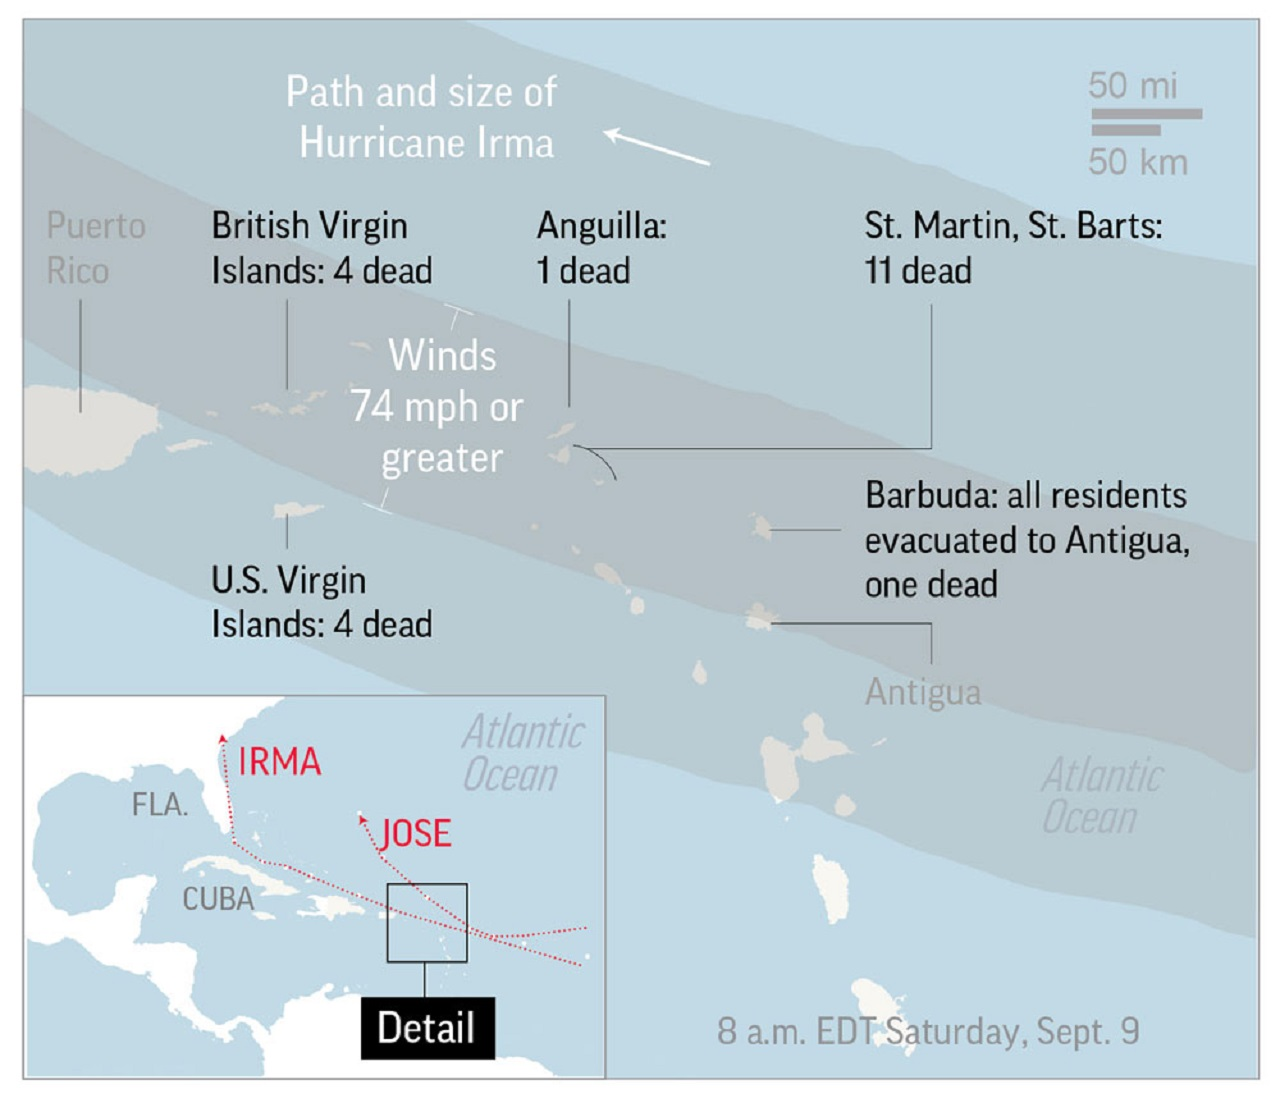 More than 20 dead across the Caribbean